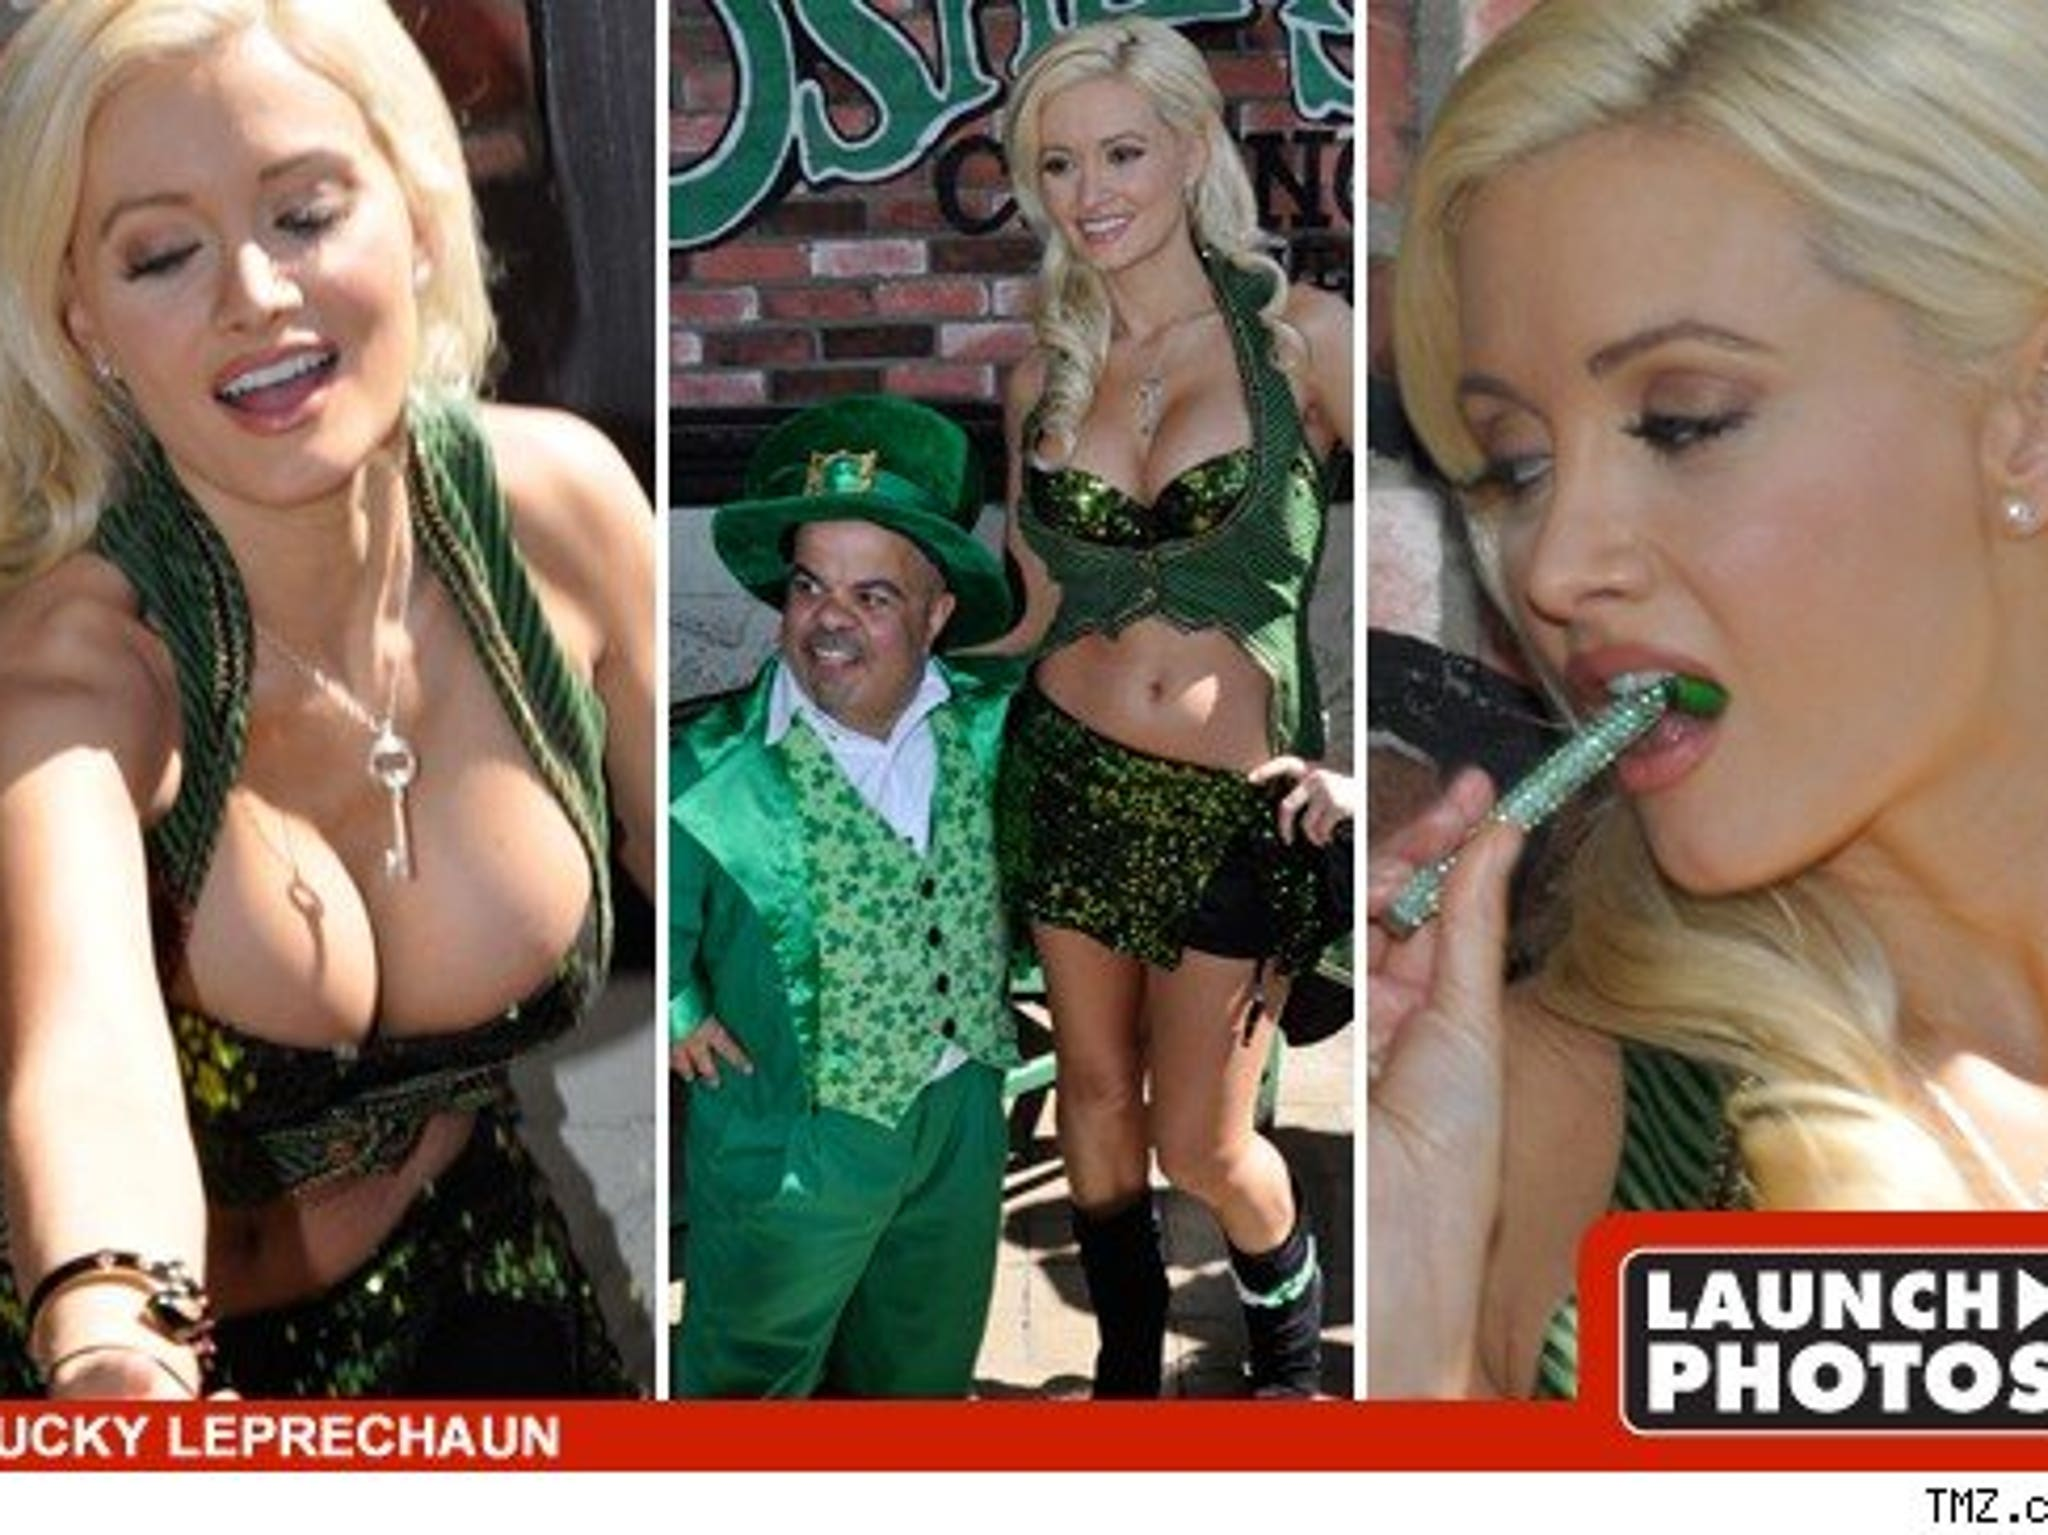 Holly Madison Better Than Green Beer